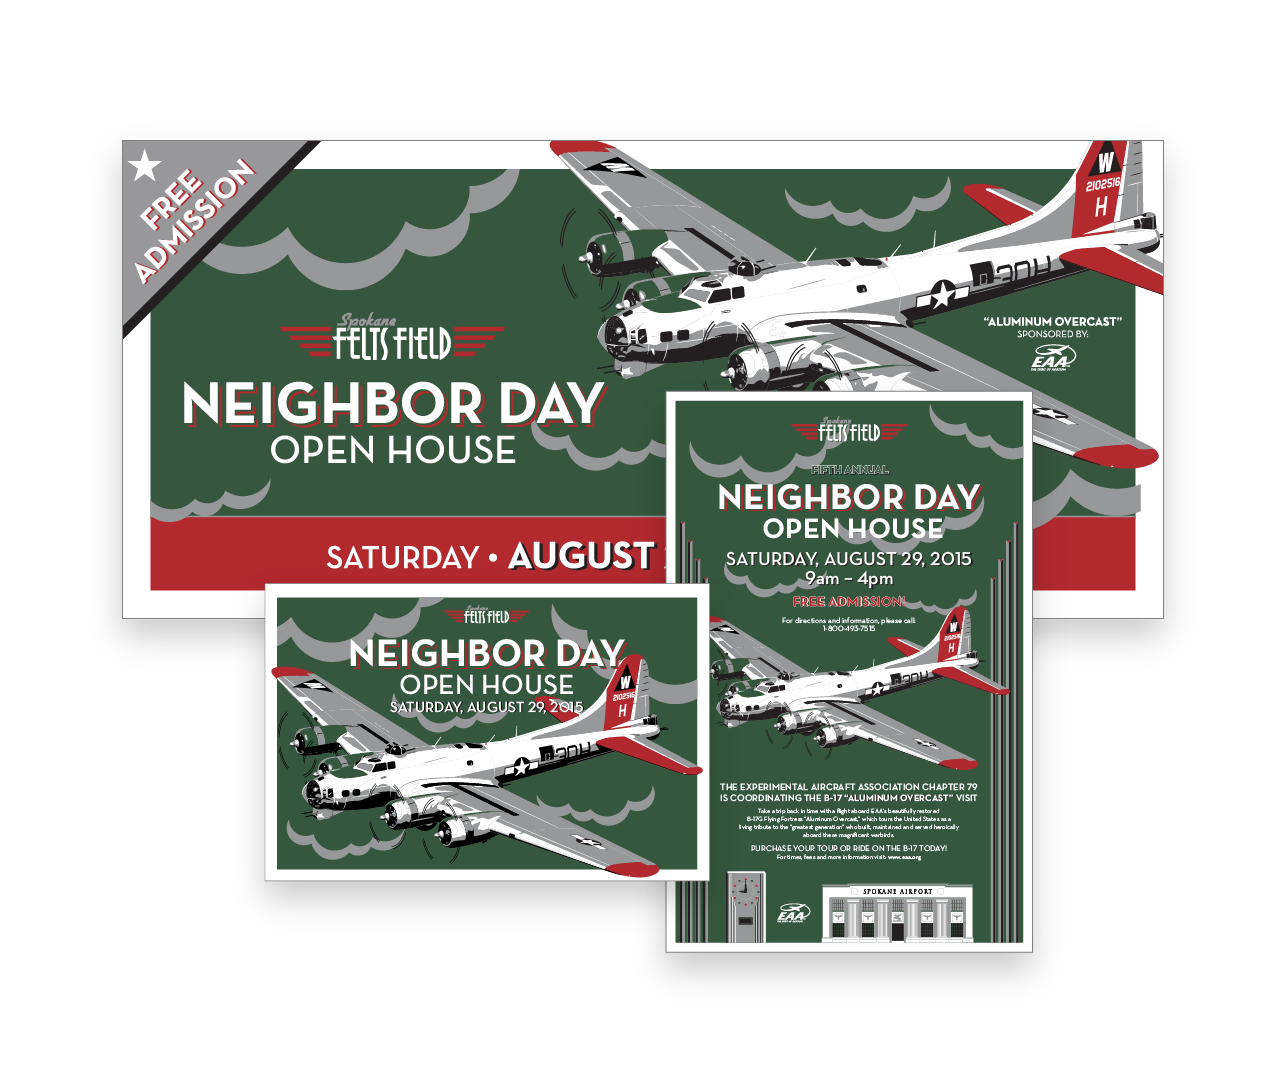 Felt Field Neighbor Day Art Deco Style Design Poster and Ad Mockups